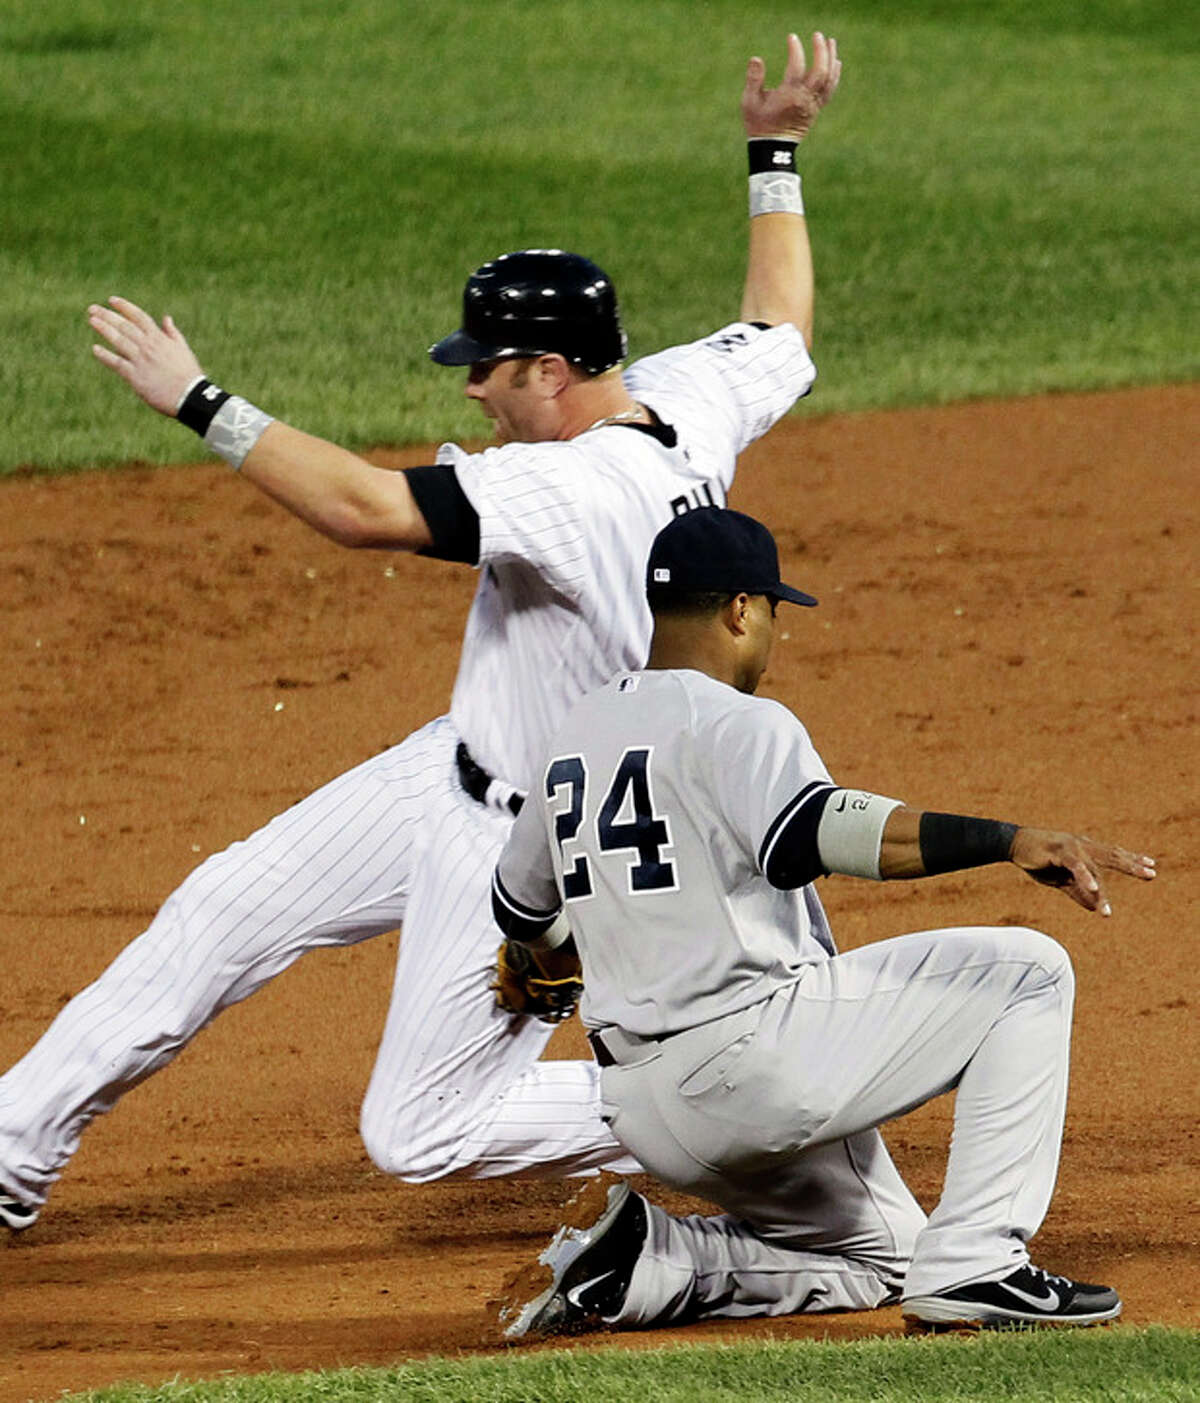 Chicago White Sox's Adam Dunn is caught stealing second by New York Yankees second baseman Robinson Cano (24) during the first inning of a baseball game, Monday, Aug. 20, 2012, in Chicago. (AP Photo/Charles Rex Arbogast)